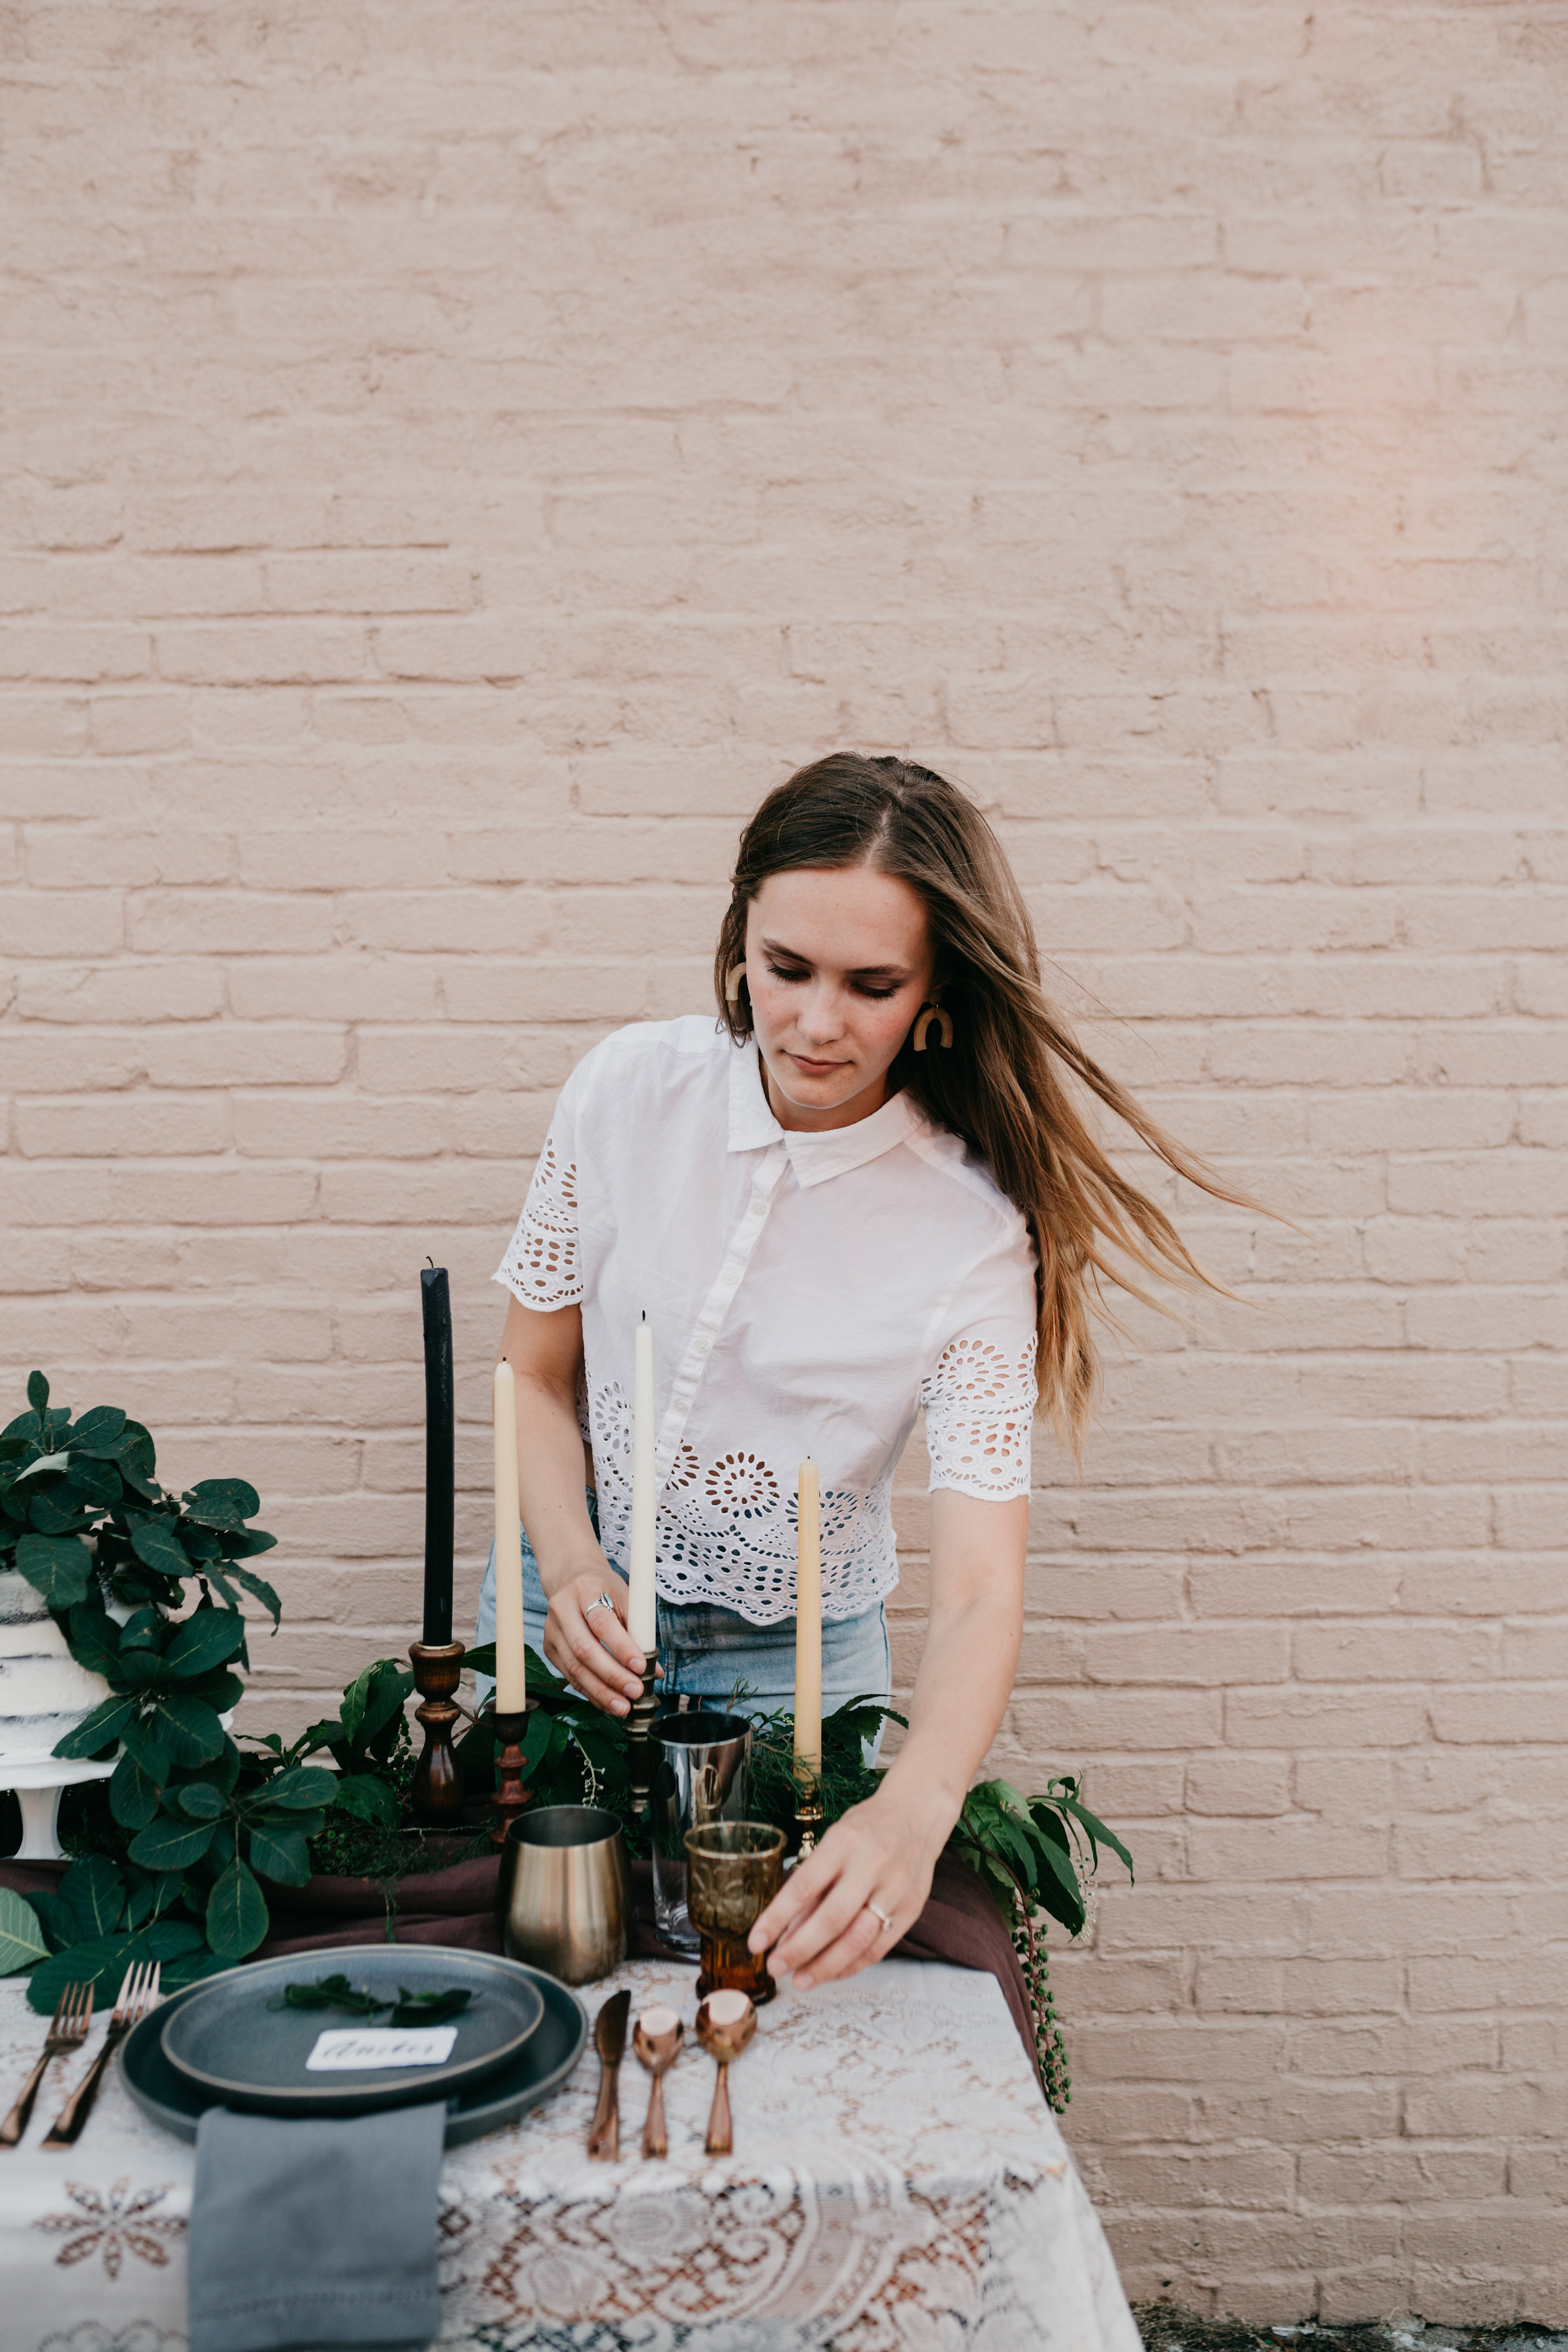 CALLING ALL COUPLES MADLY IN LOVE AND CONSIDERING ELOPING!! Here is your chance to have the elopement of your dreams! | The Perfectly Styled Tablescape by Wildly Collective Photo by Ally J Photography.